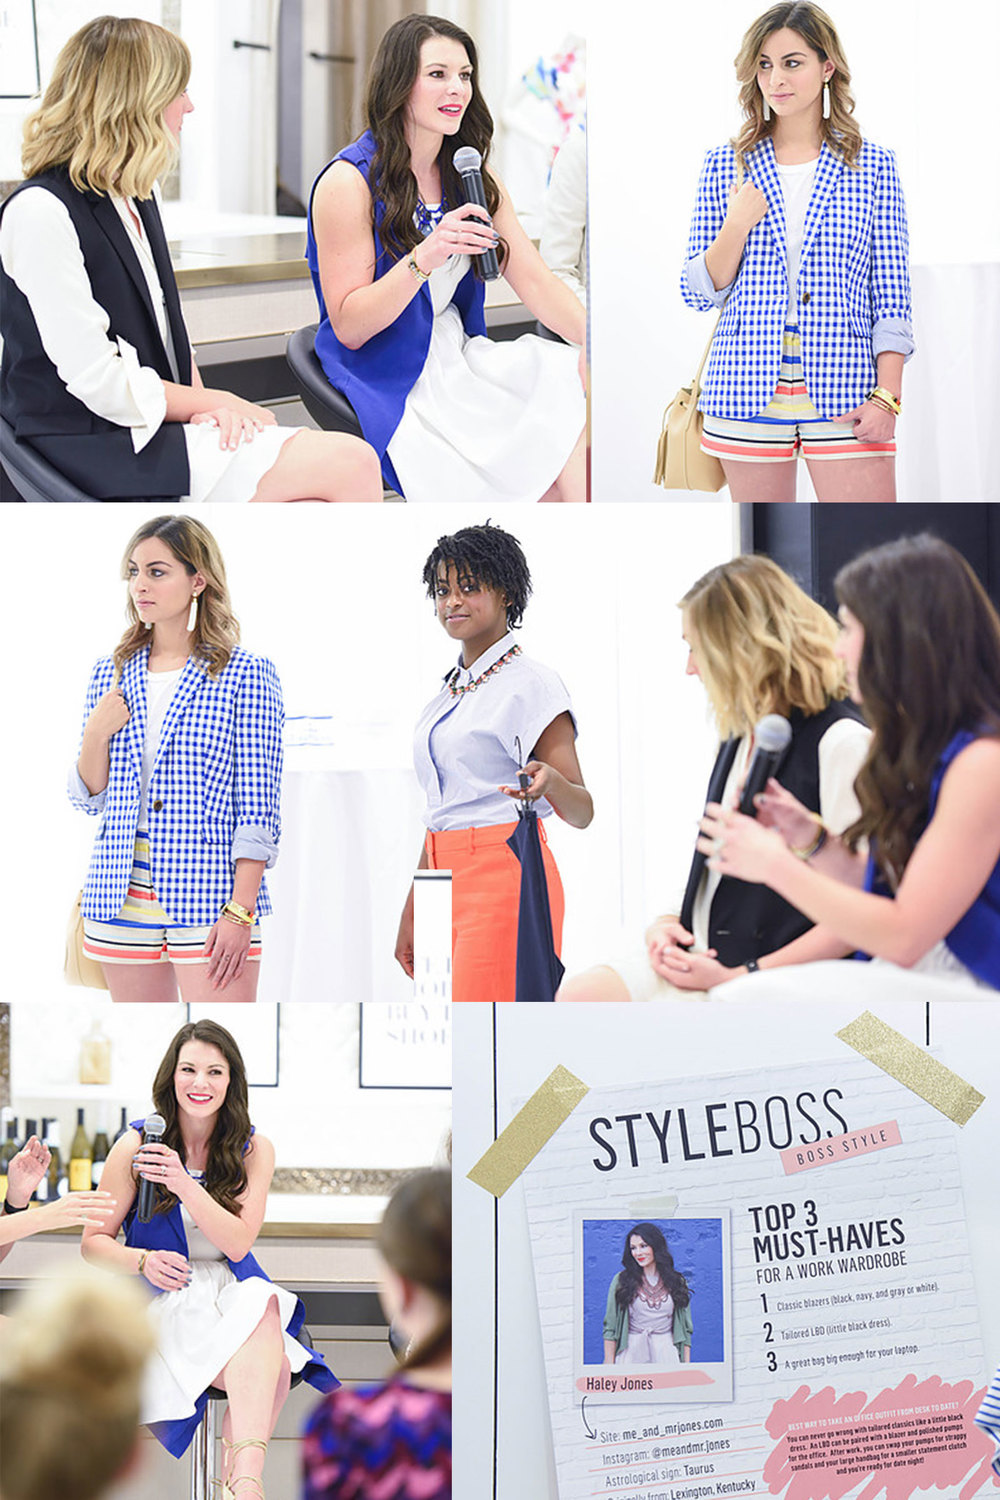 Style Boss Event at Westfield Seattle.  Stylish Summer Outfits for Work.  Overcome your fears and be the best #girlboss you an be!